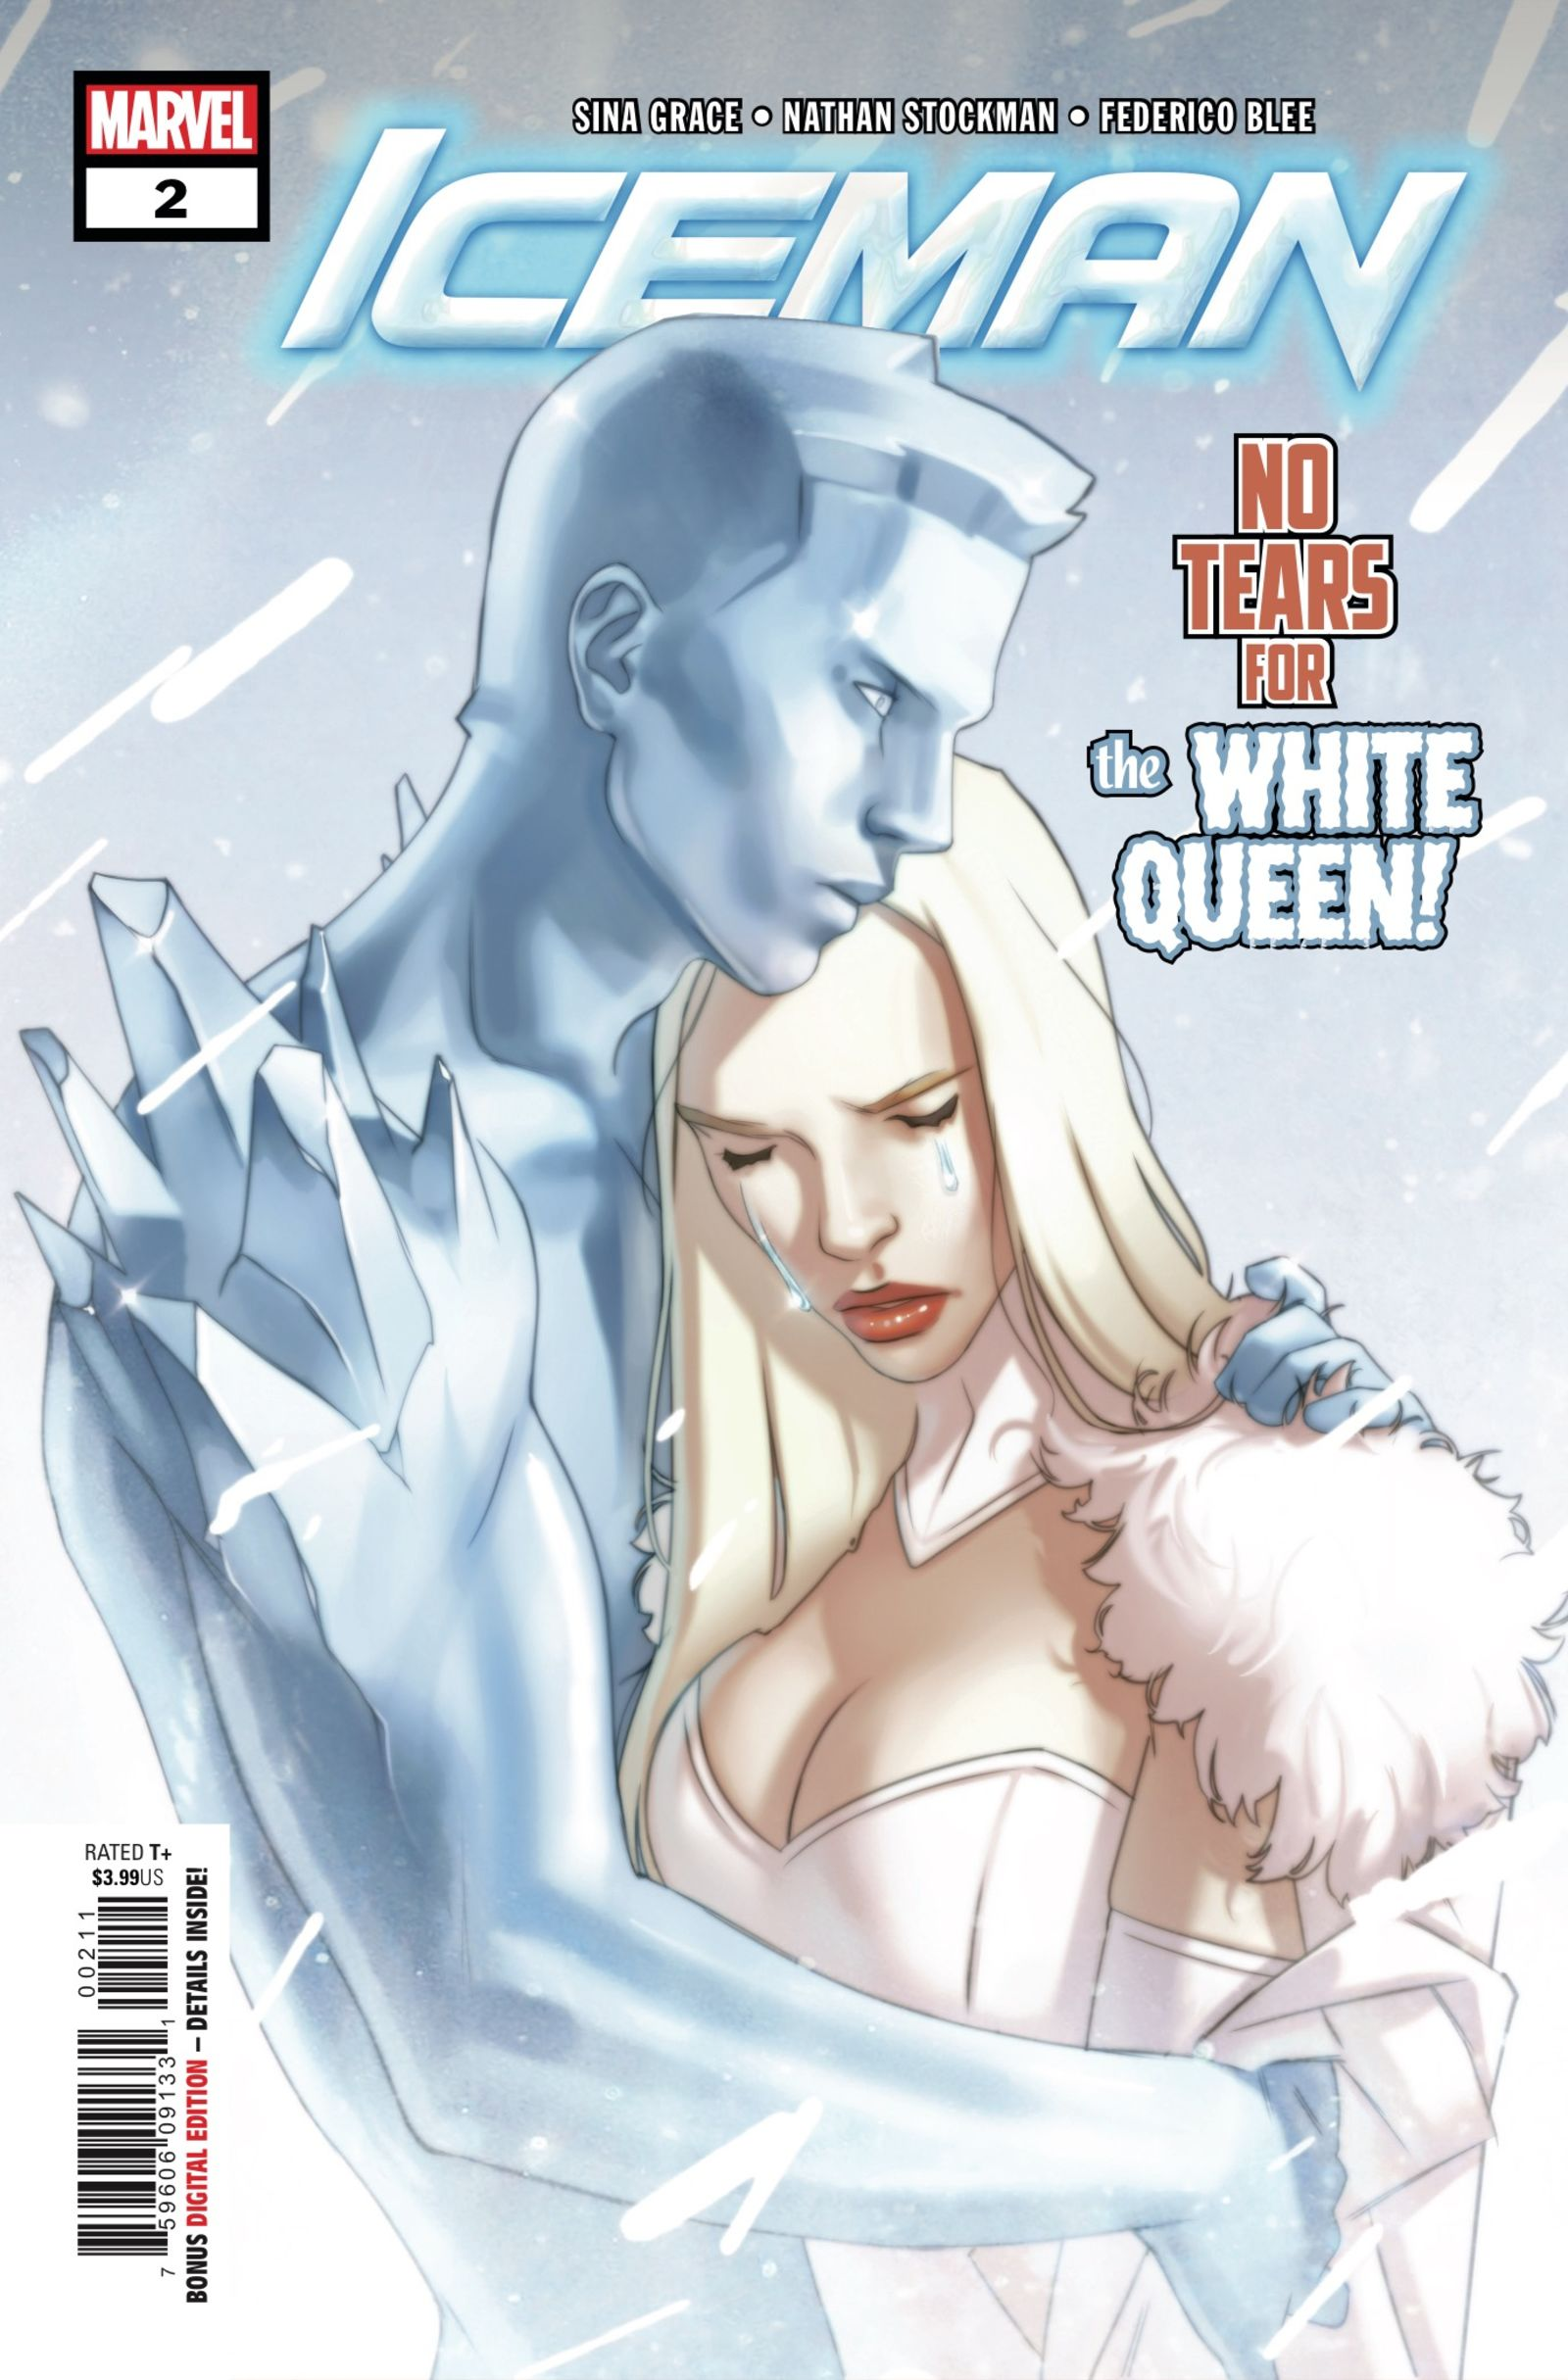 Iceman #2 Review